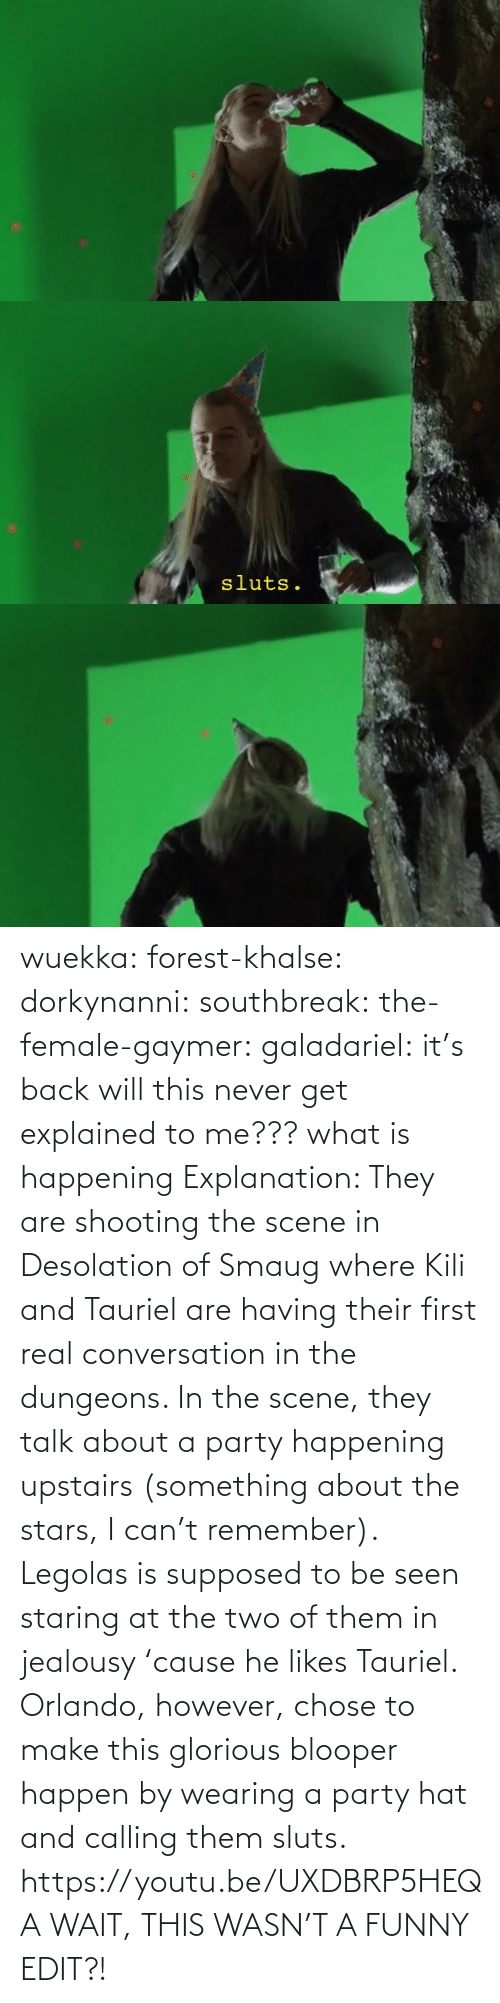 Image: wuekka: forest-khalse:   dorkynanni:  southbreak:   the-female-gaymer:   galadariel:  it's back   will this never get explained to me???    what is happening    Explanation:  They are shooting the scene in Desolation of Smaug where Kili and Tauriel are having their first real conversation in the dungeons.  In the scene, they talk about a party happening upstairs (something about the stars, I can't remember). Legolas is supposed to be seen staring at the two of them in jealousy 'cause he likes Tauriel.  Orlando, however, chose to make this glorious blooper happen by wearing a party hat and calling them sluts.    https://youtu.be/UXDBRP5HEQA    WAIT, THIS WASN'T A FUNNY EDIT?!